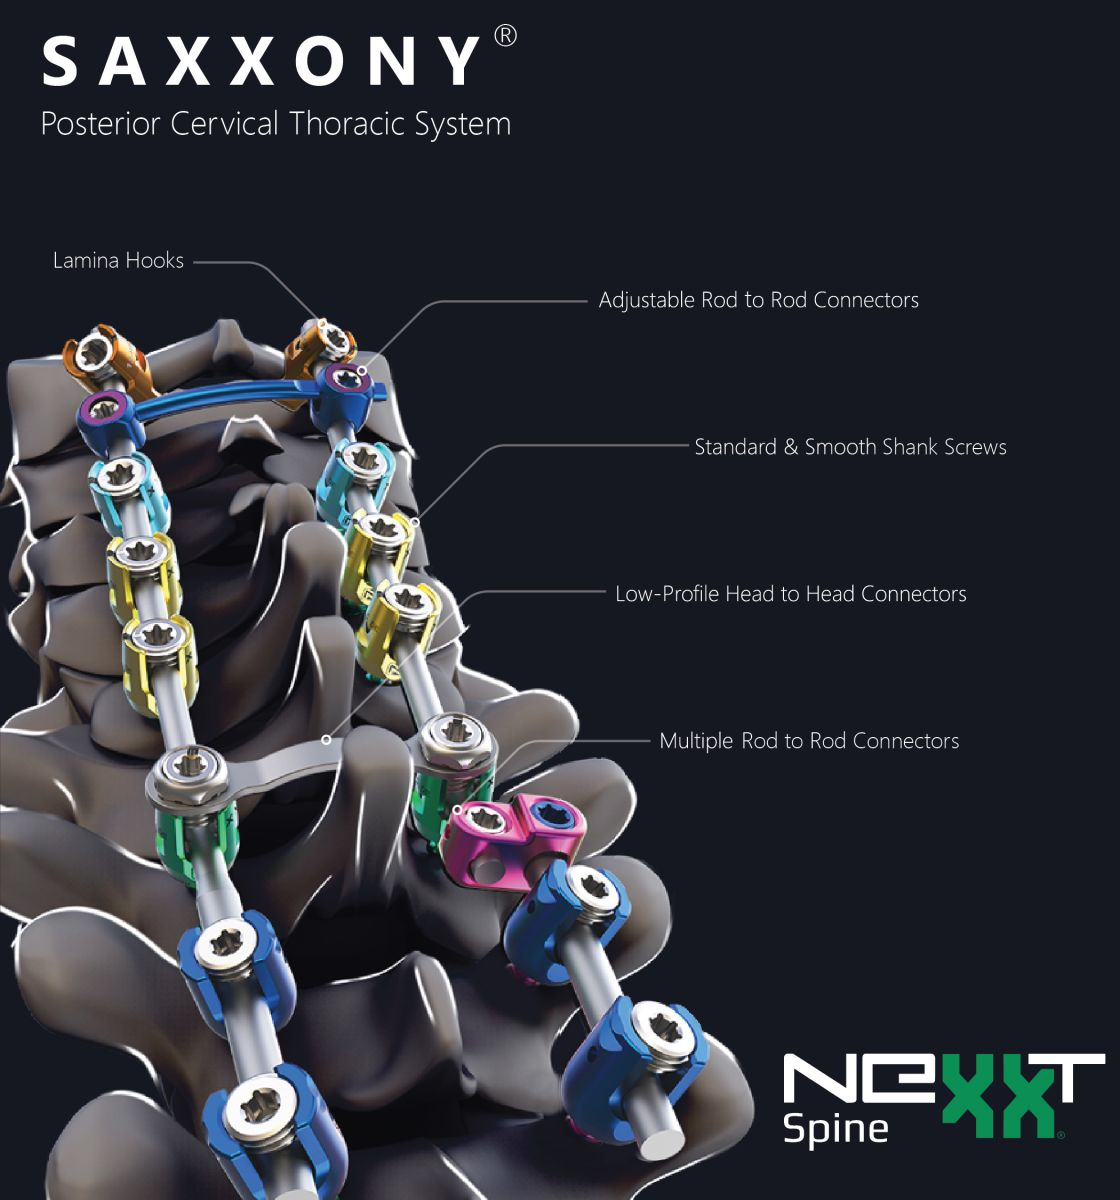 Nexxt Spine SAXXONY Posterior Cervical Thoracic System - ORTHOFLASH